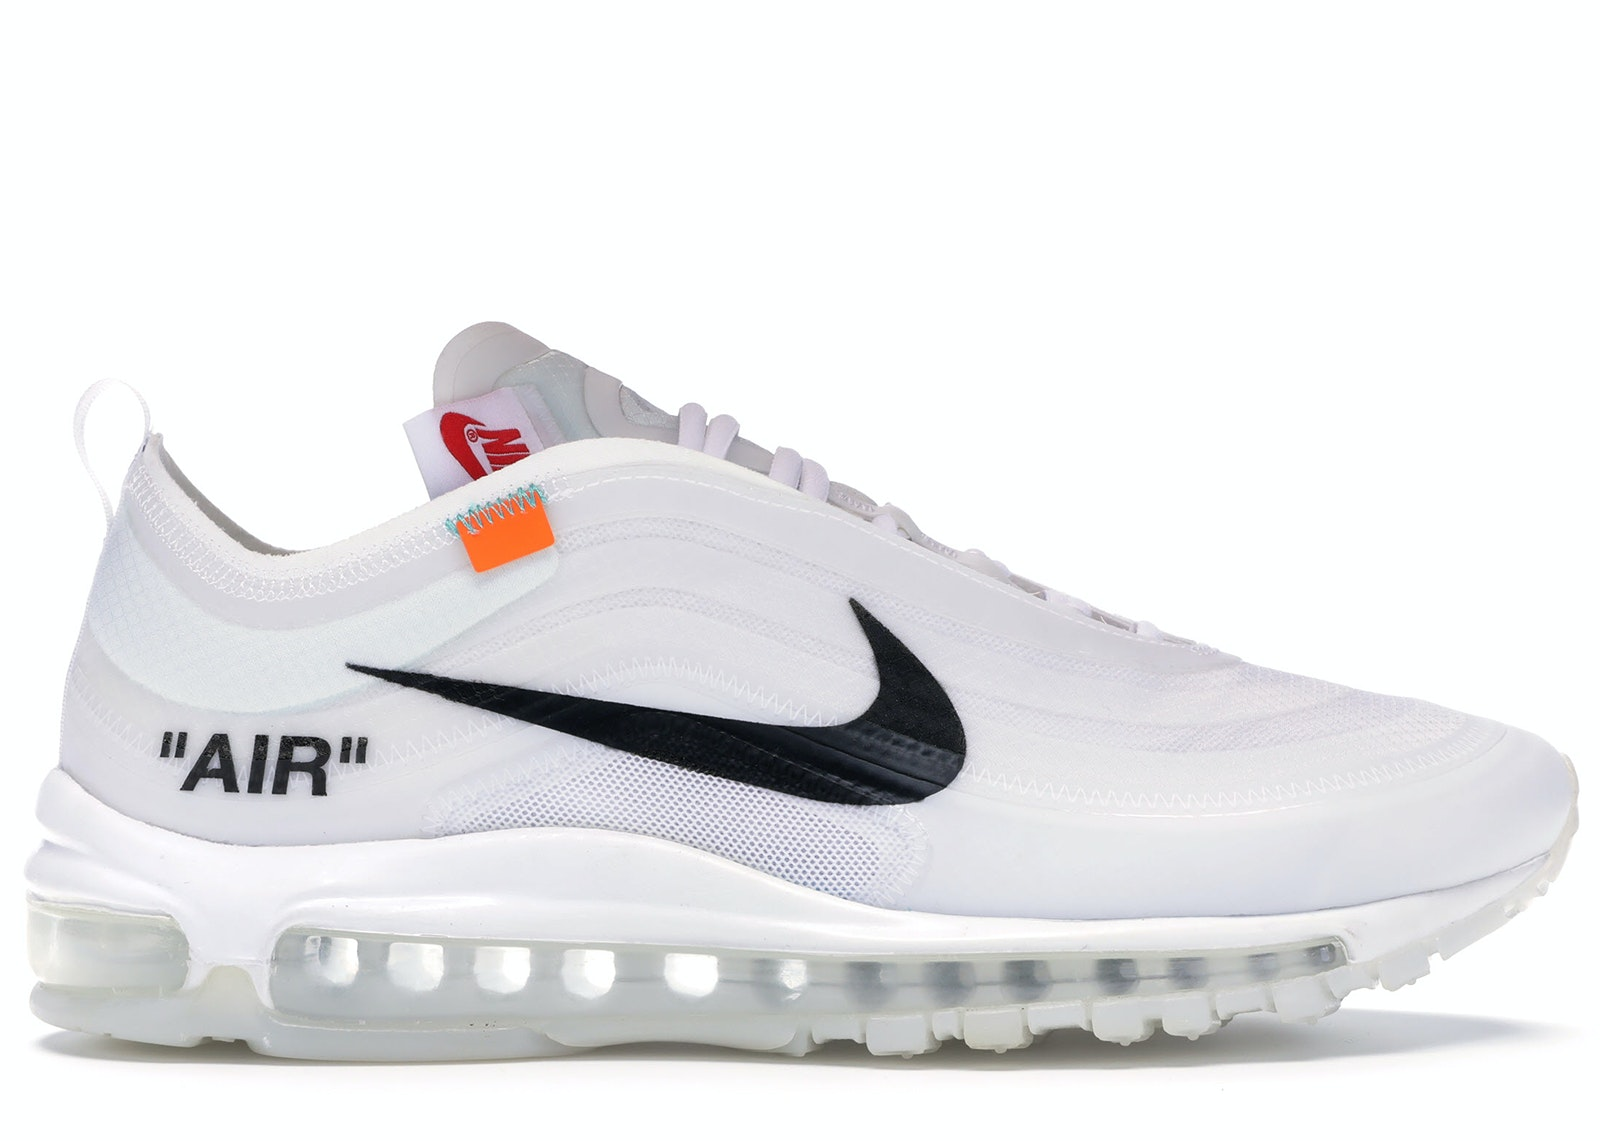 White Nike Air Max Shoes - Musée des impressionnismes Giverny 2239fb9bca669